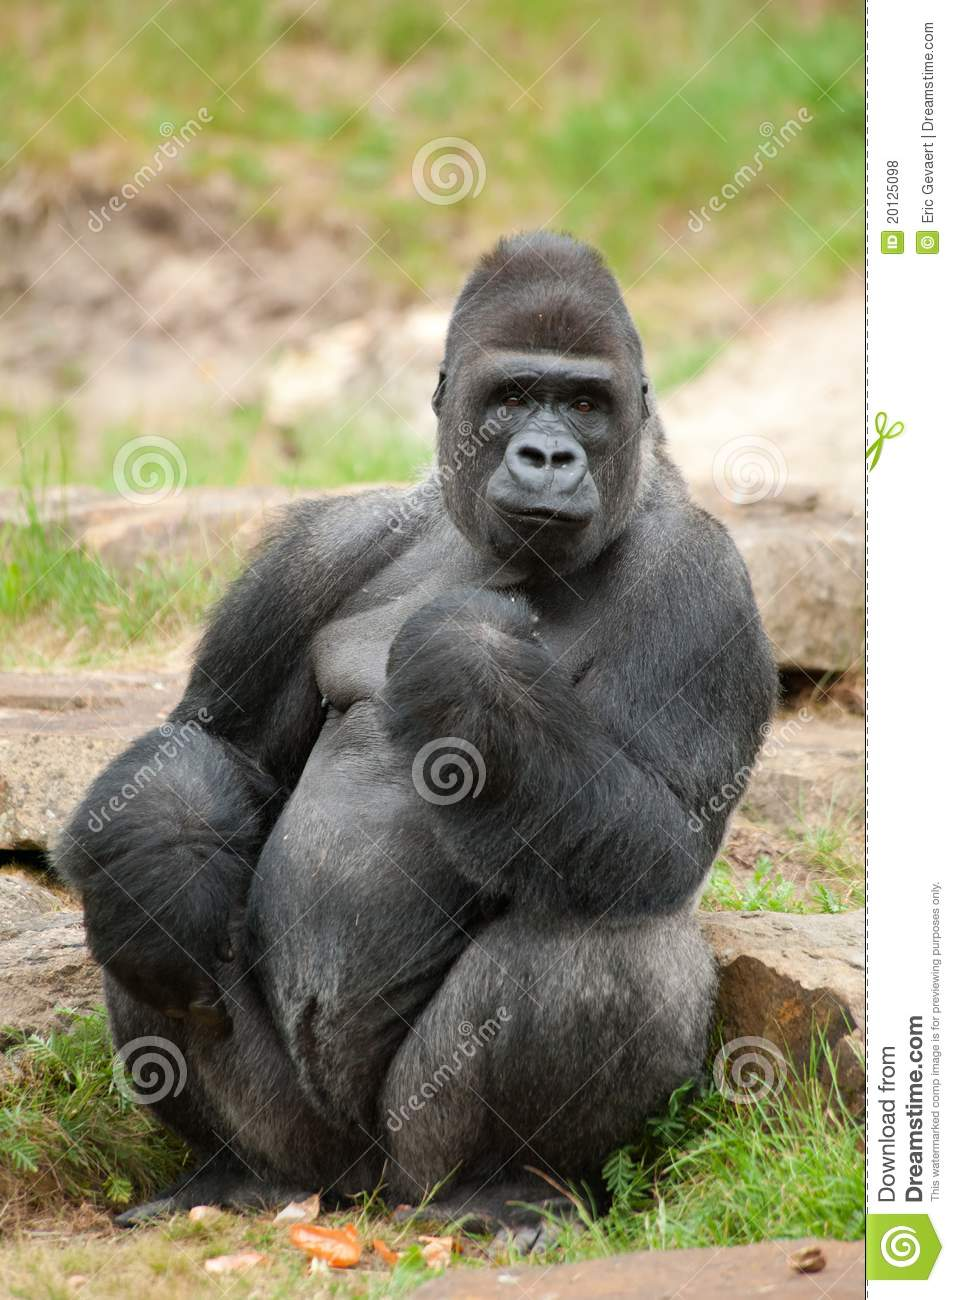 Male Silverback Gorilla Royalty Free Stock Photos - Image: 20125098